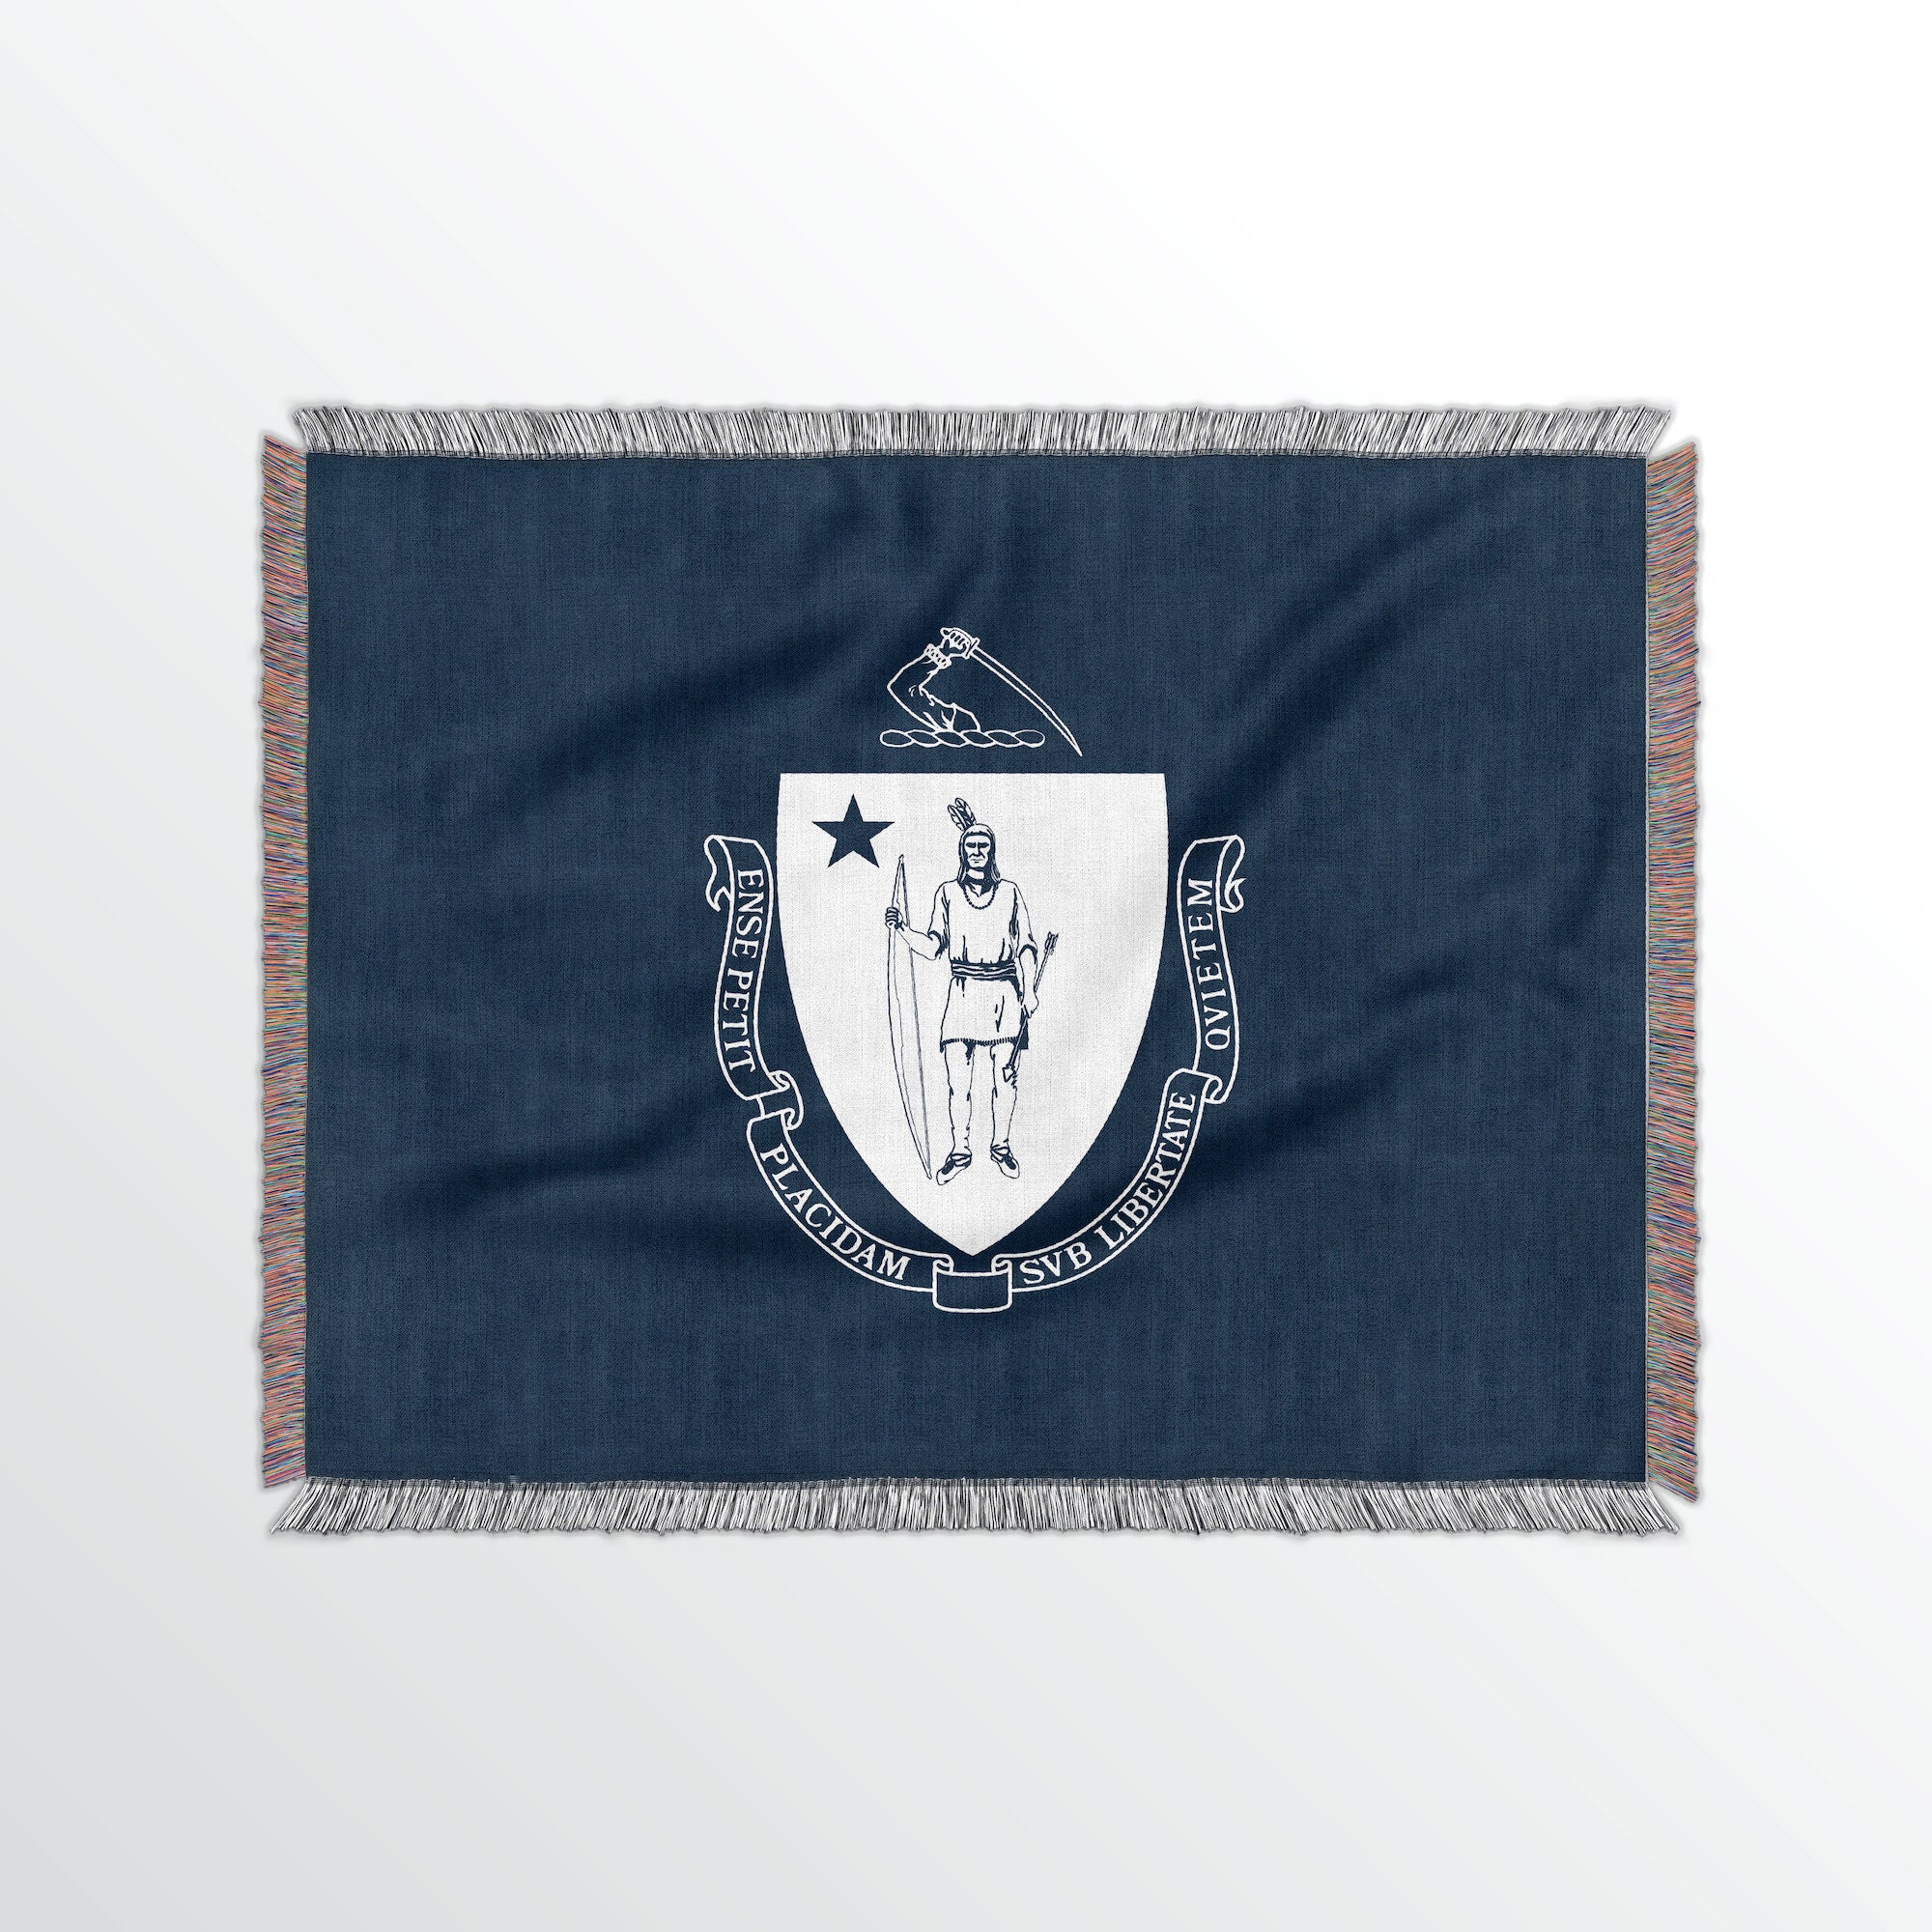 Massachusetts State Woven Cotton Blanet - Point Two Design